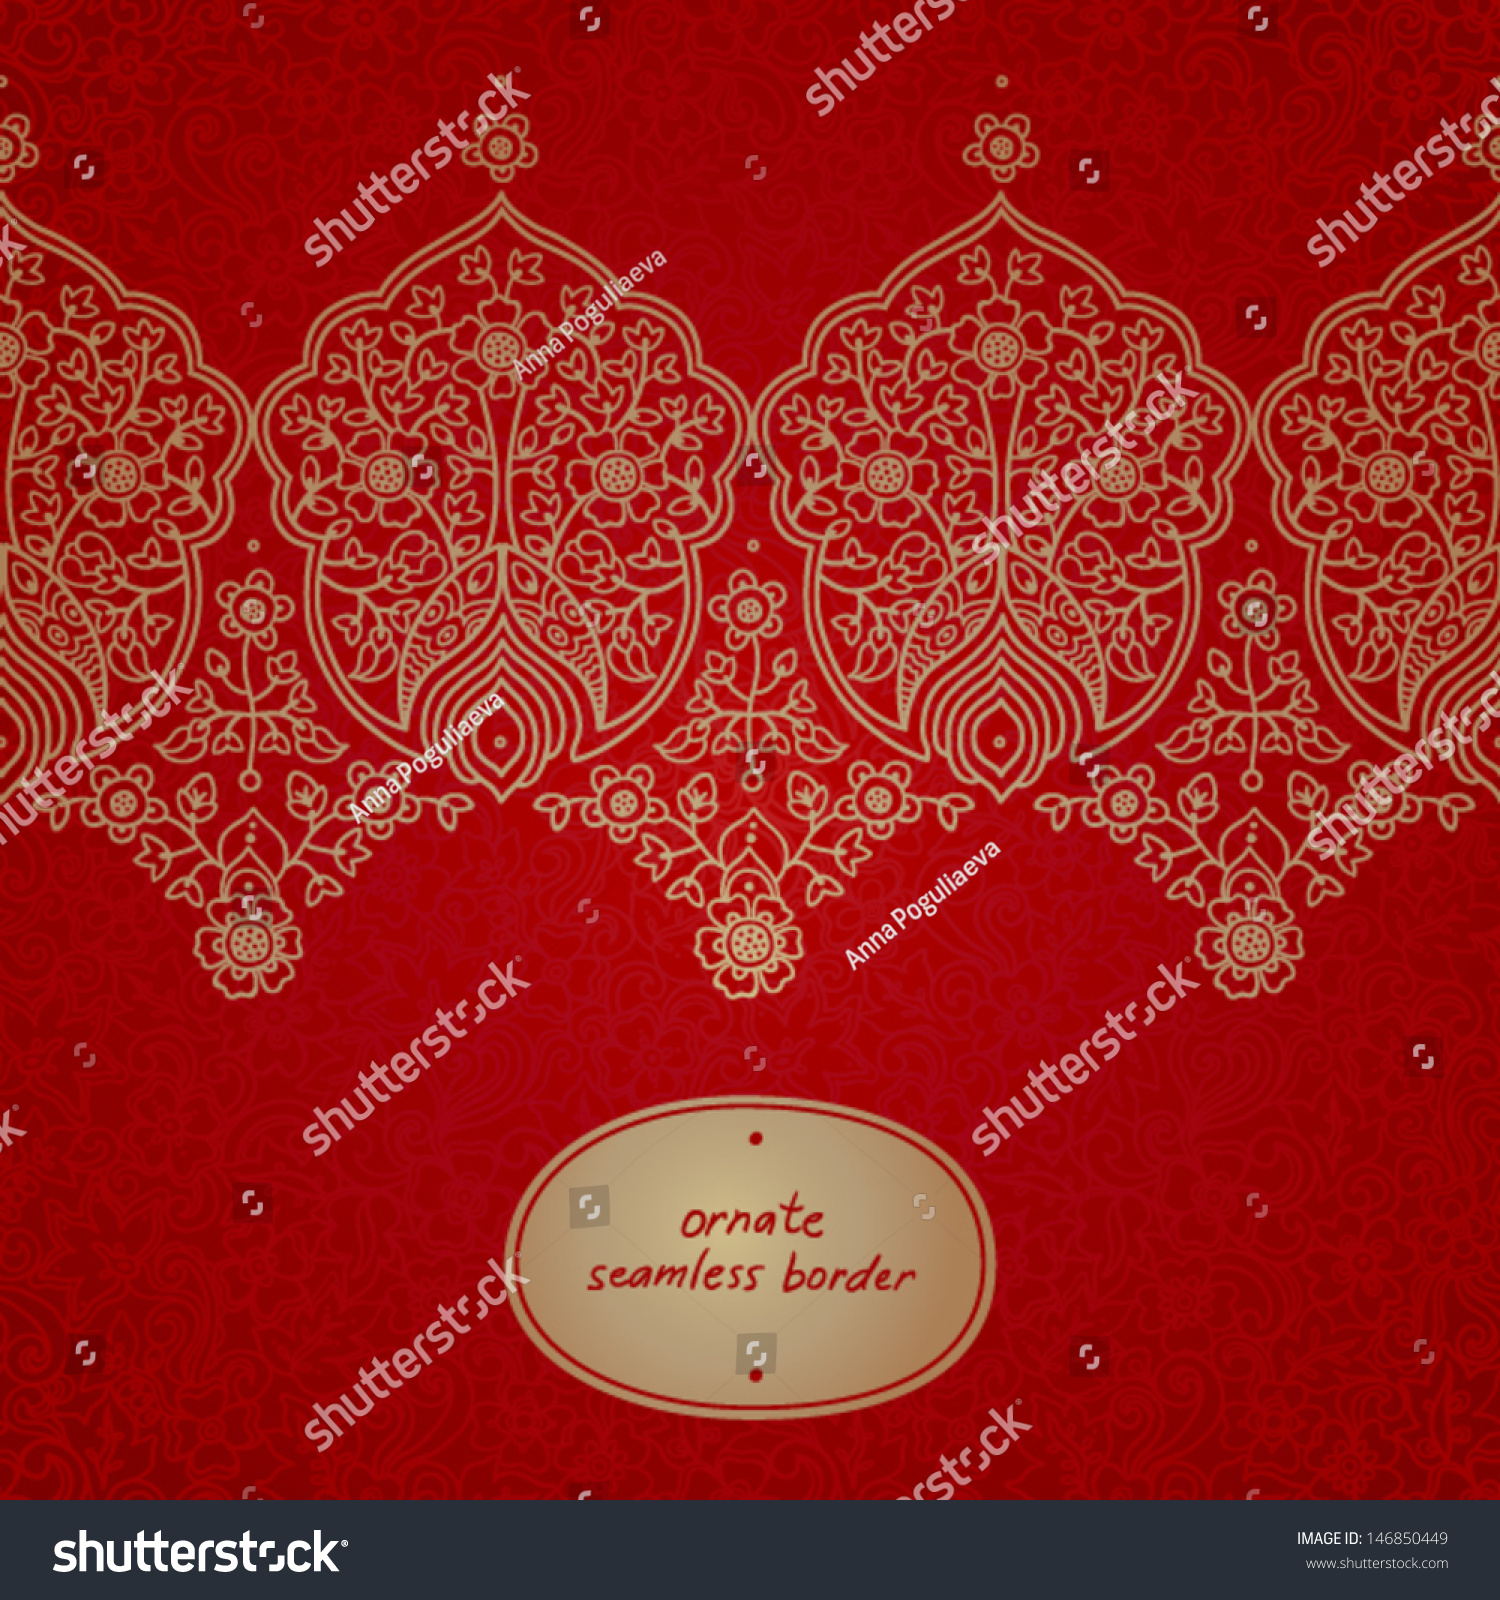 Vintage Seamless Border With Lacy Ornament You Can Place Your Text